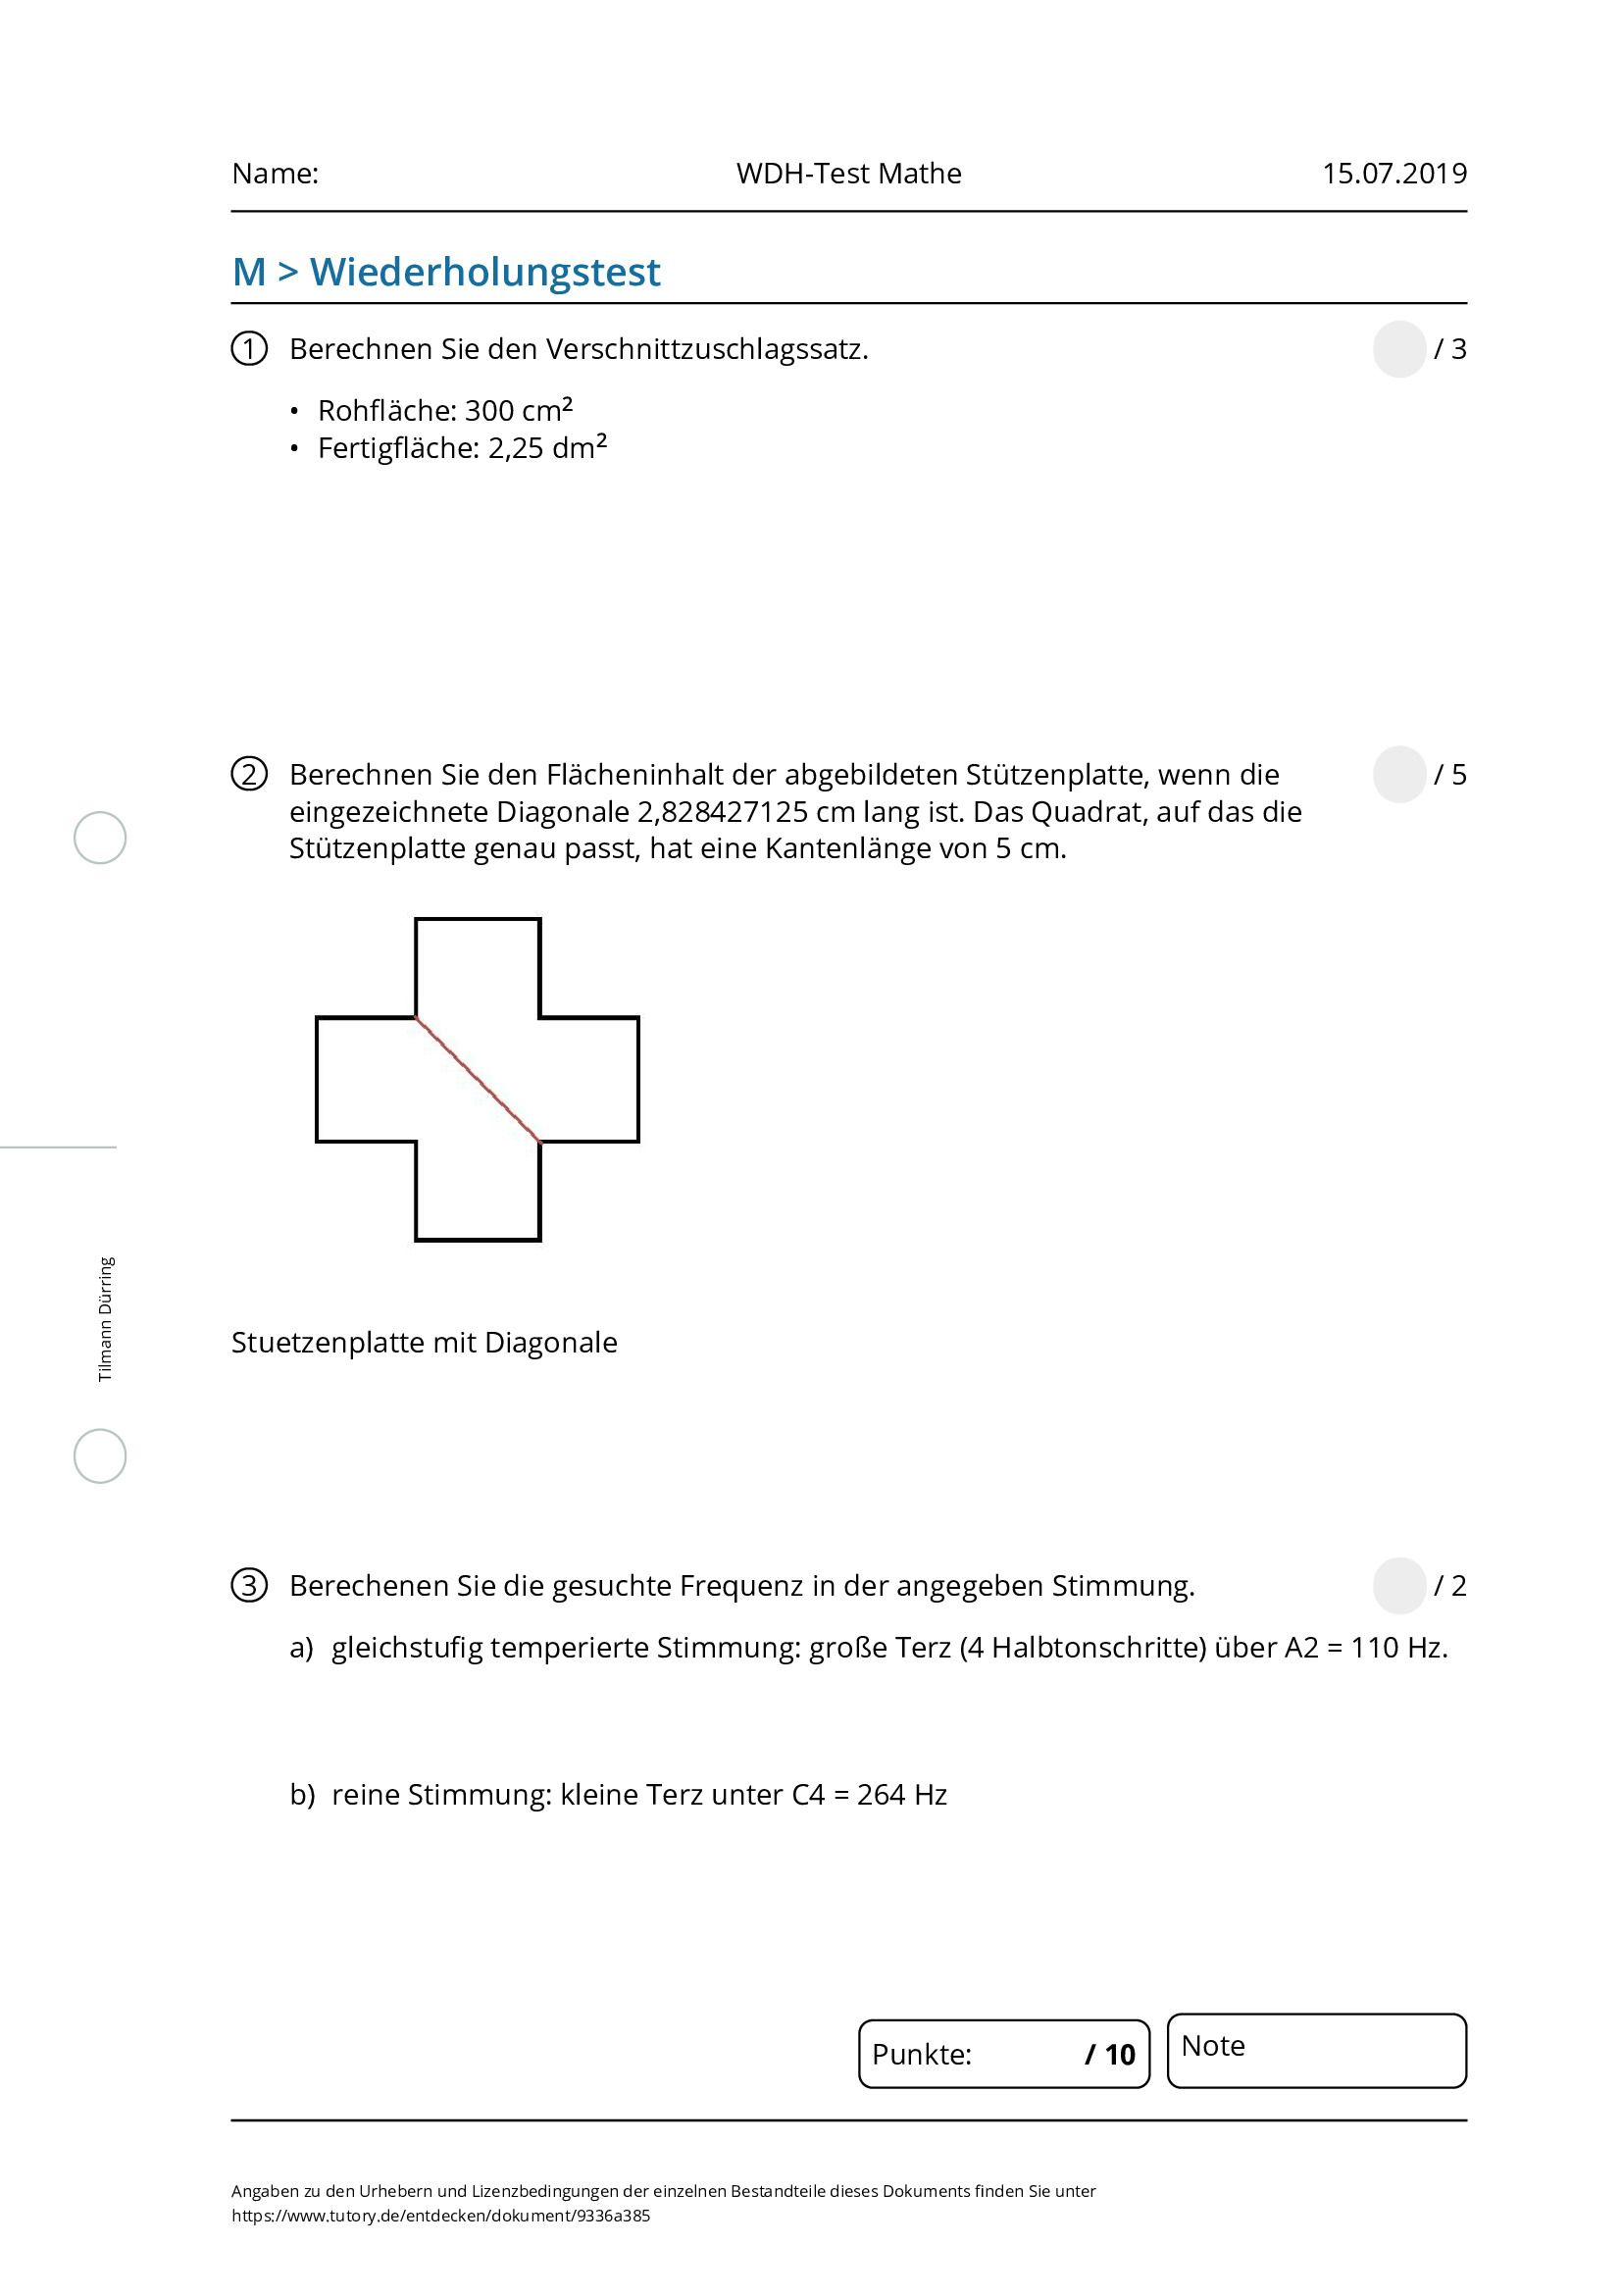 WDH-Test Mathe